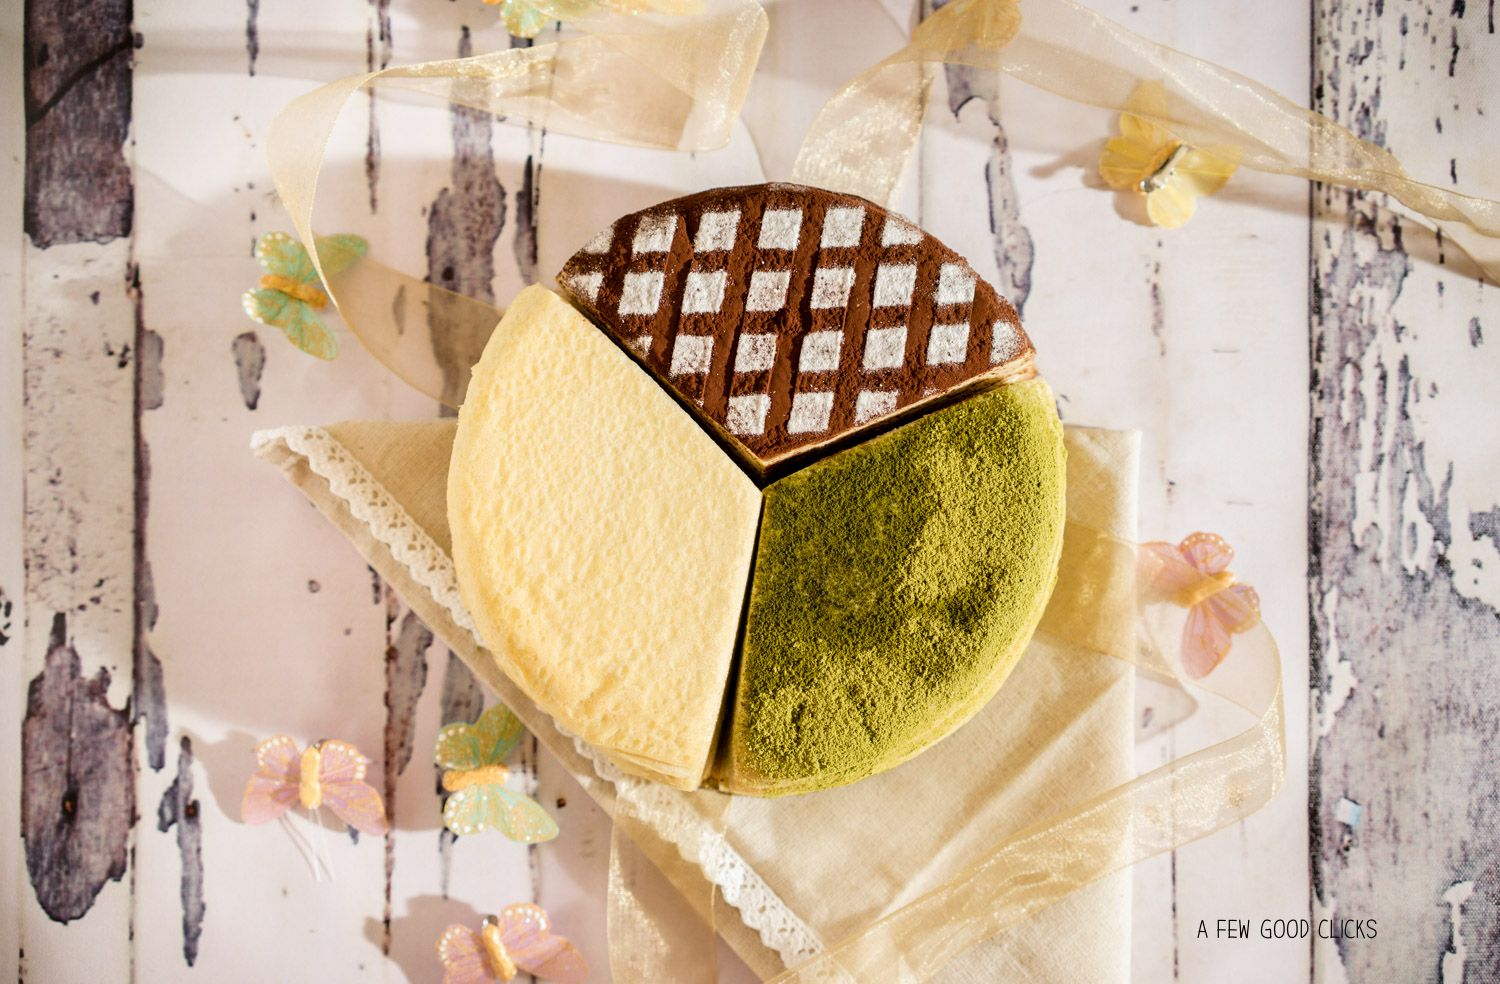 10 Tempting Photographs Of Mille Crepe Cakes To Make You Hungry